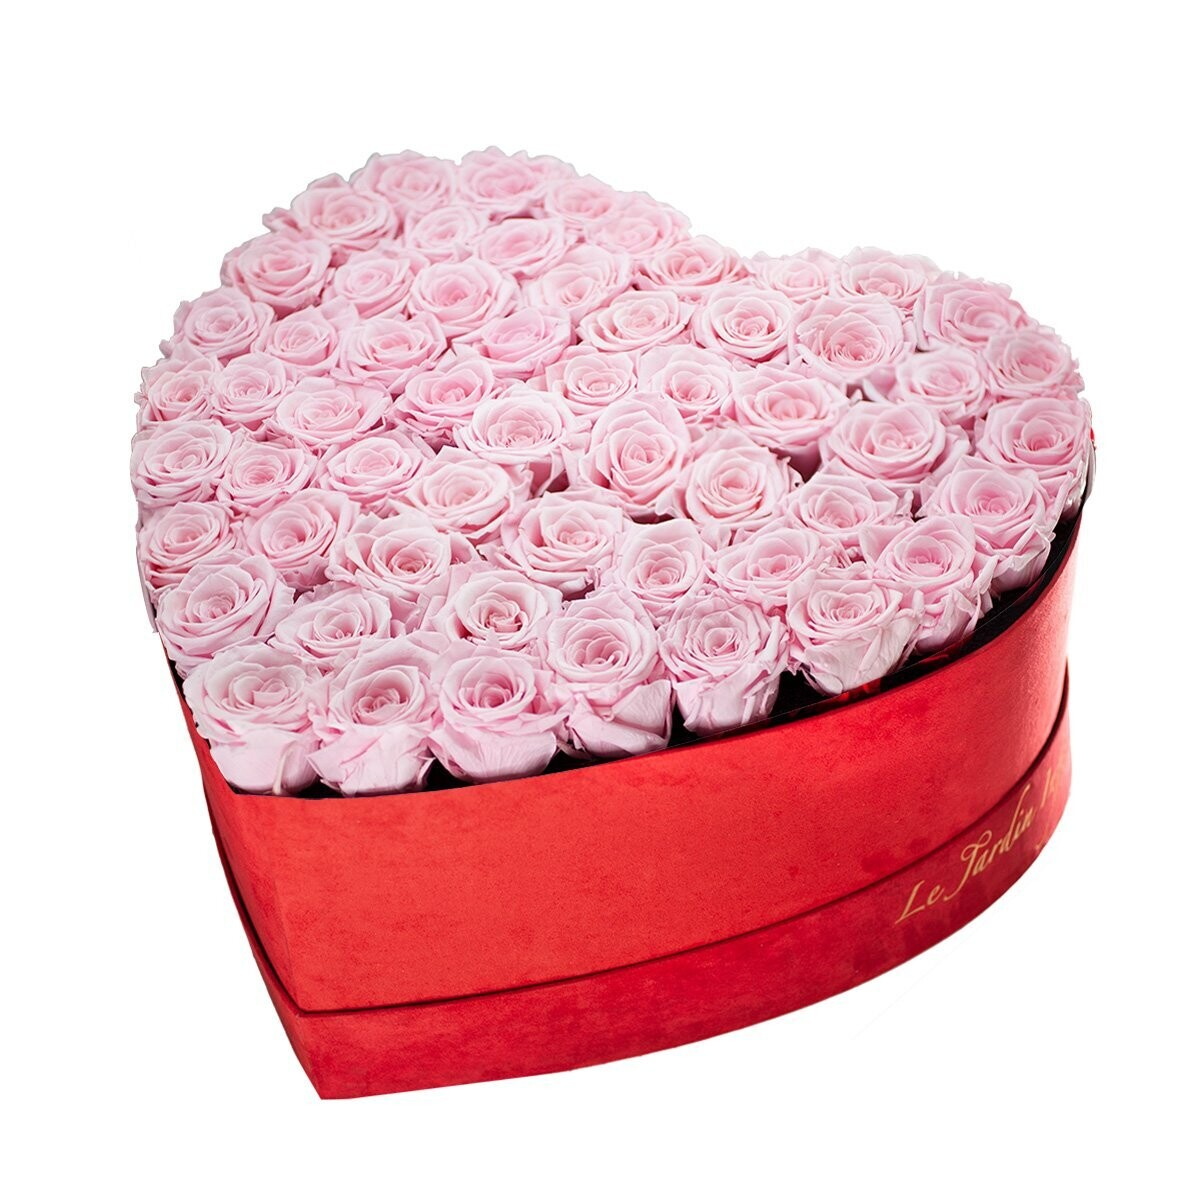 55-65 Soft Pink Preserved Roses in A Heart Shaped Box - Medium Heart